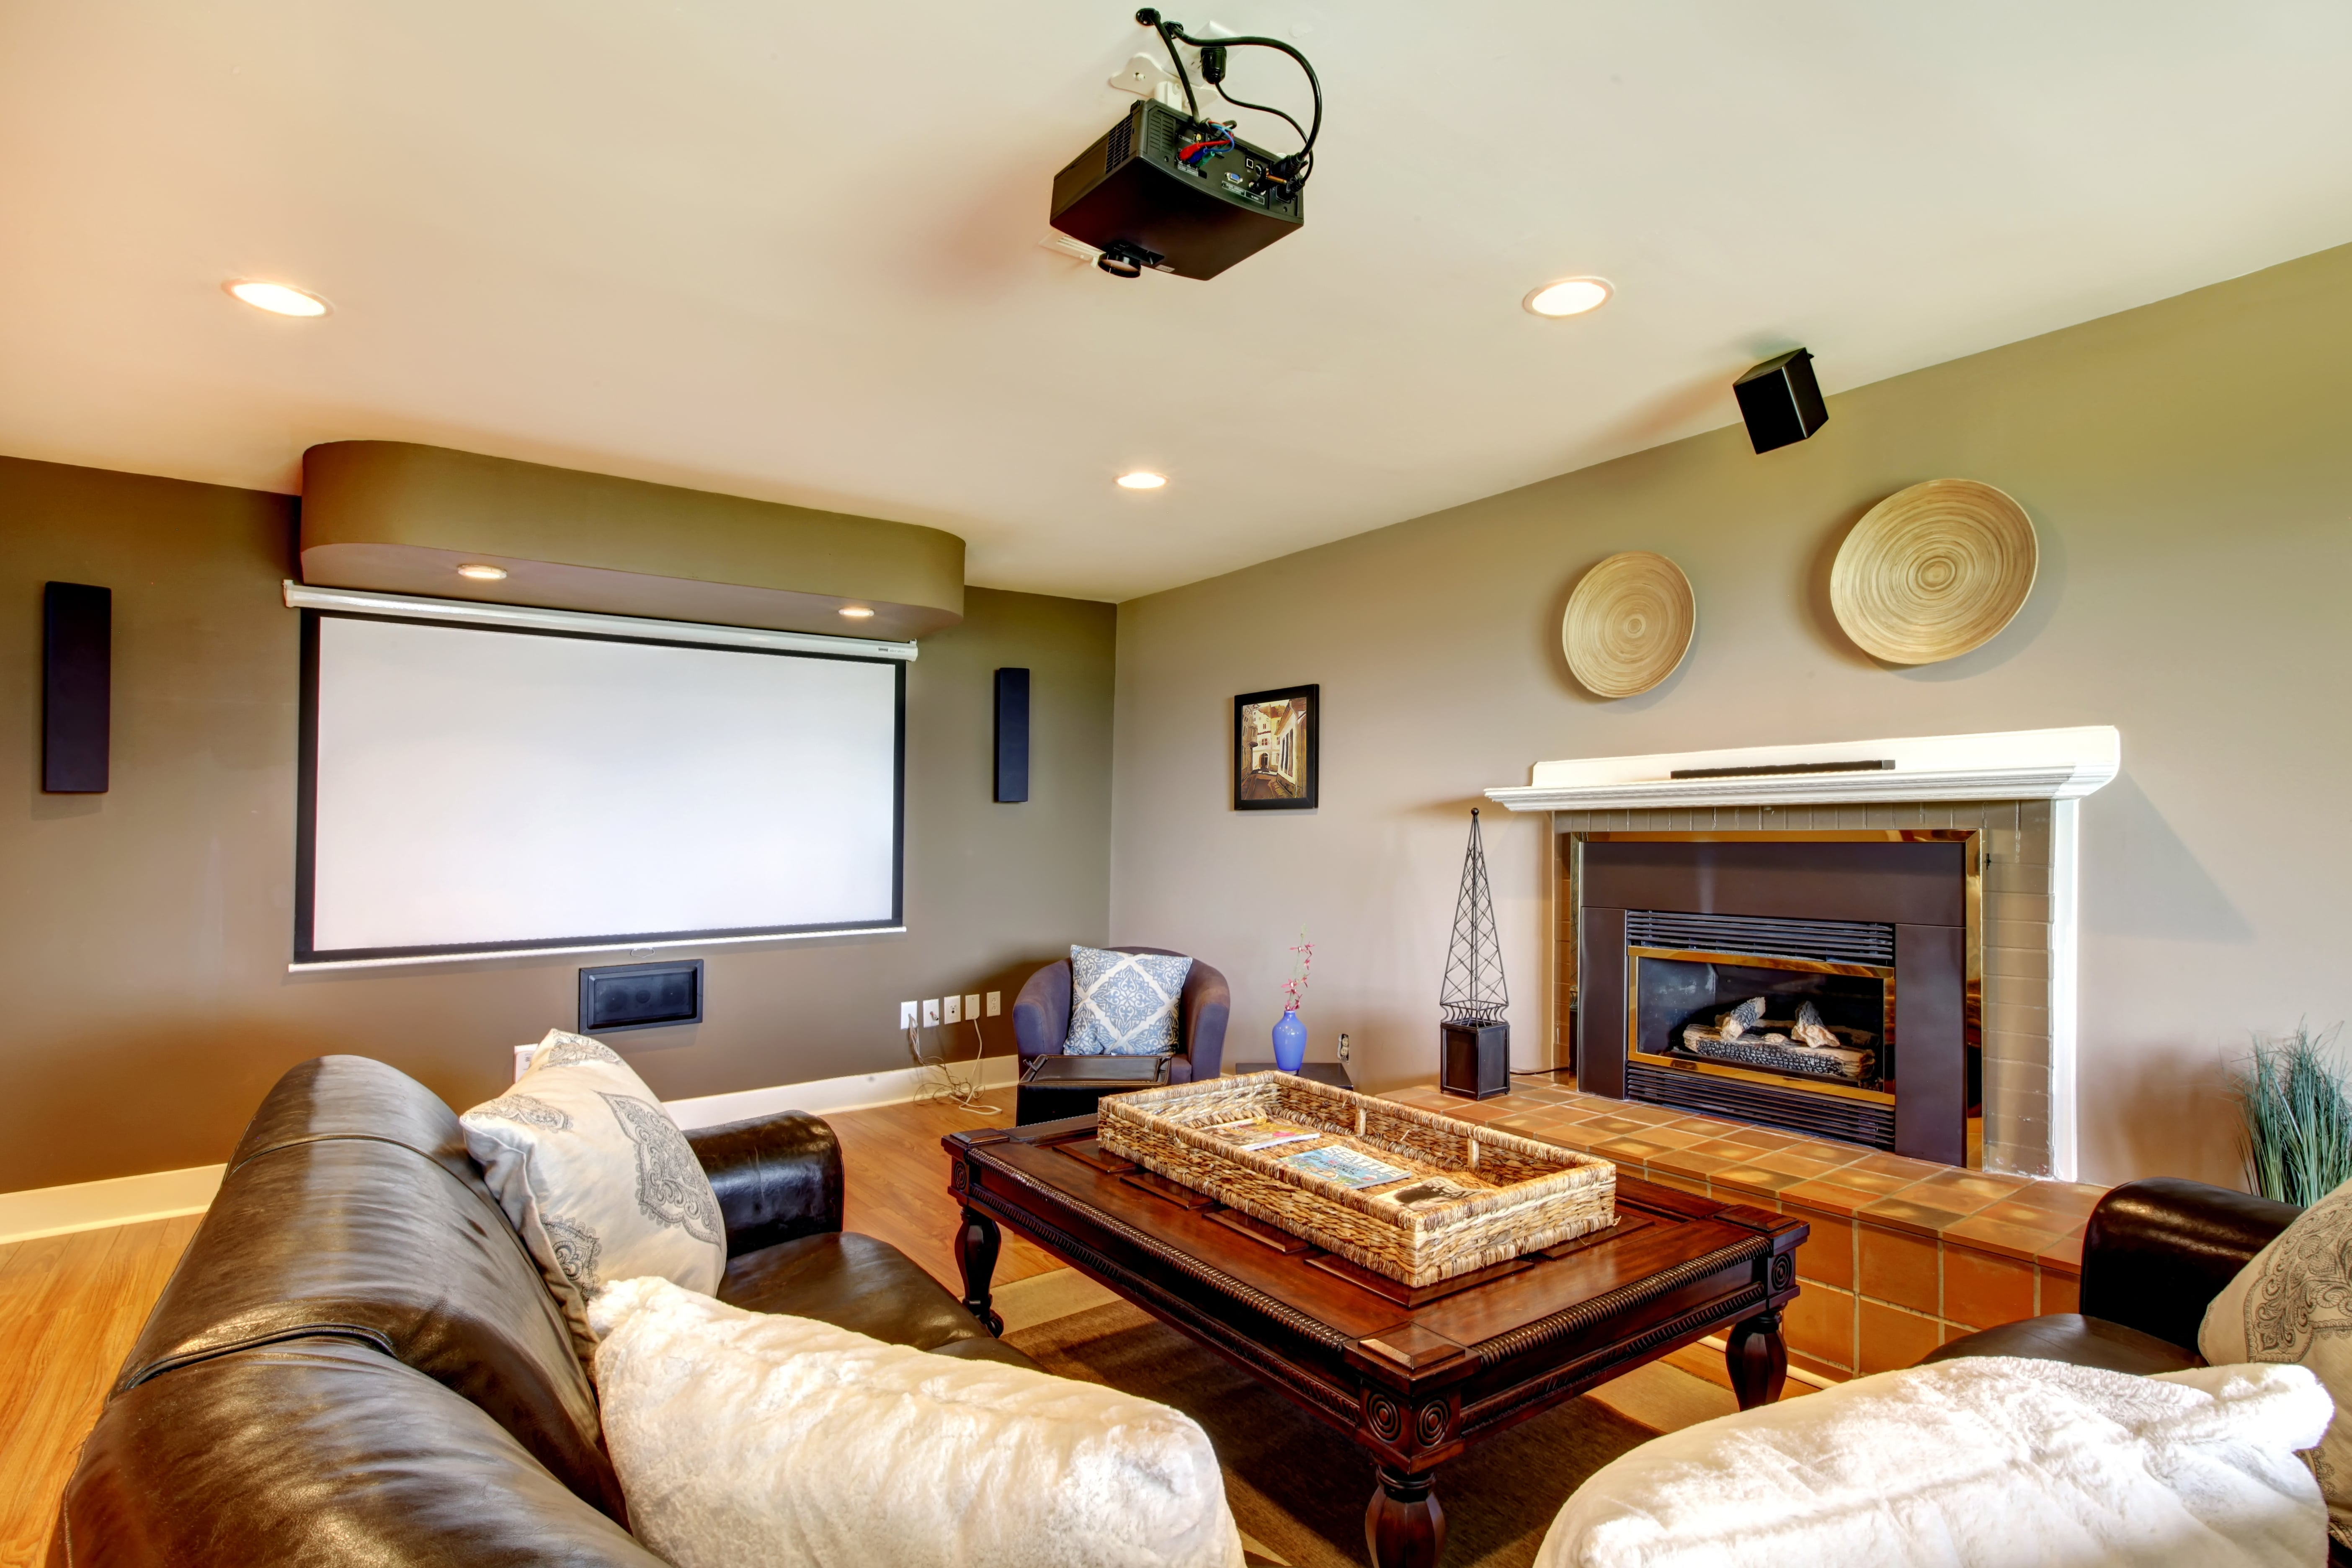 Living room with a projector and a fireplace